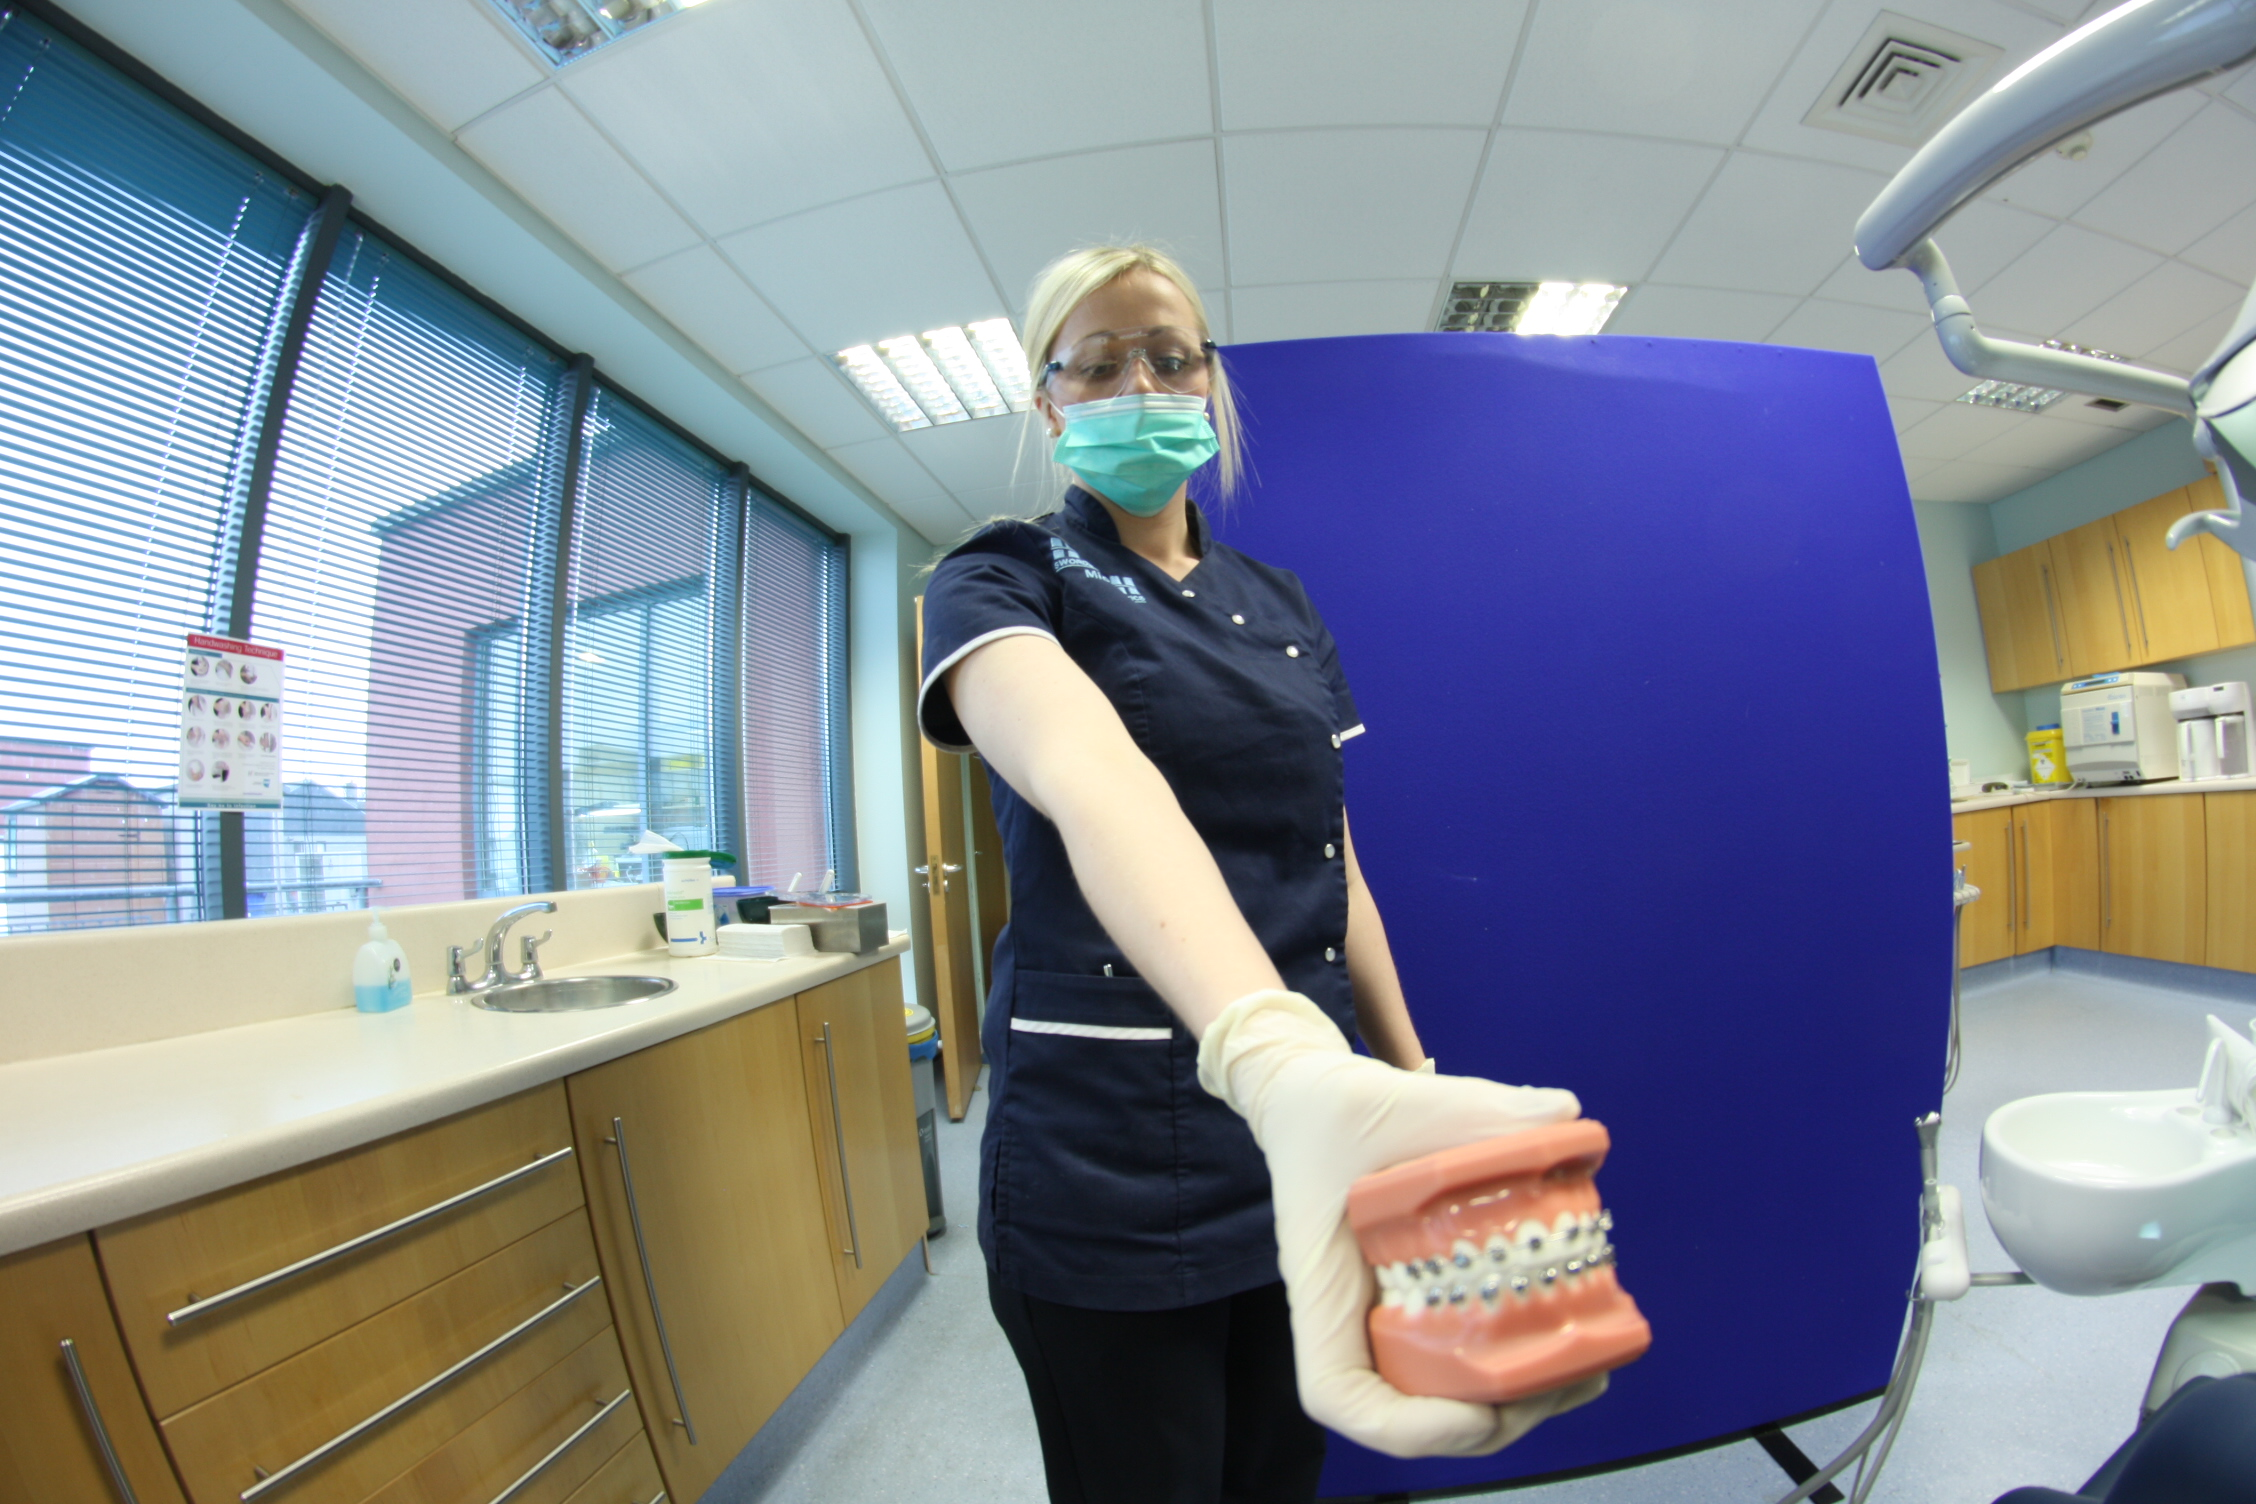 Swords Orthodontics is one of the first practices in Ireland to train an orthodontic therapist